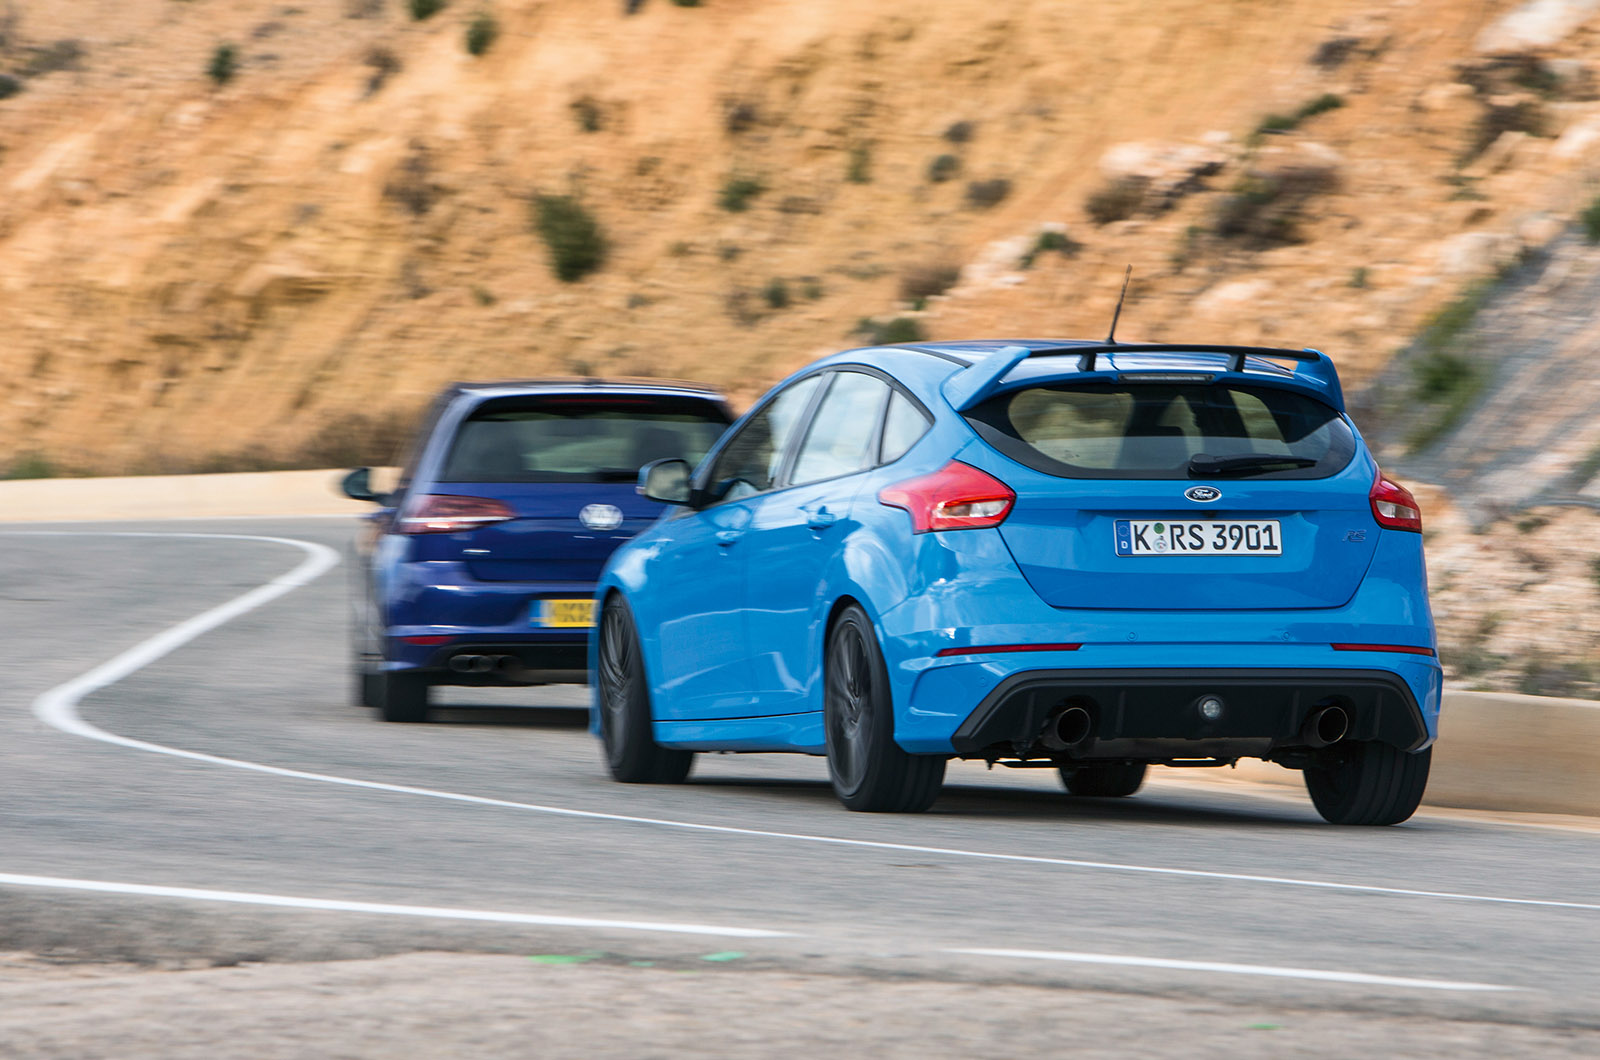 Ford Focus Rs Versus Volkswagen Golf R Twin Test Autocar Wiring Diagram The Rest Of Package Is More Easily Summarised Engine Vibrant Poppy Gearshift Slick Brakes Powerful But Its Those Cornering Moments That Live